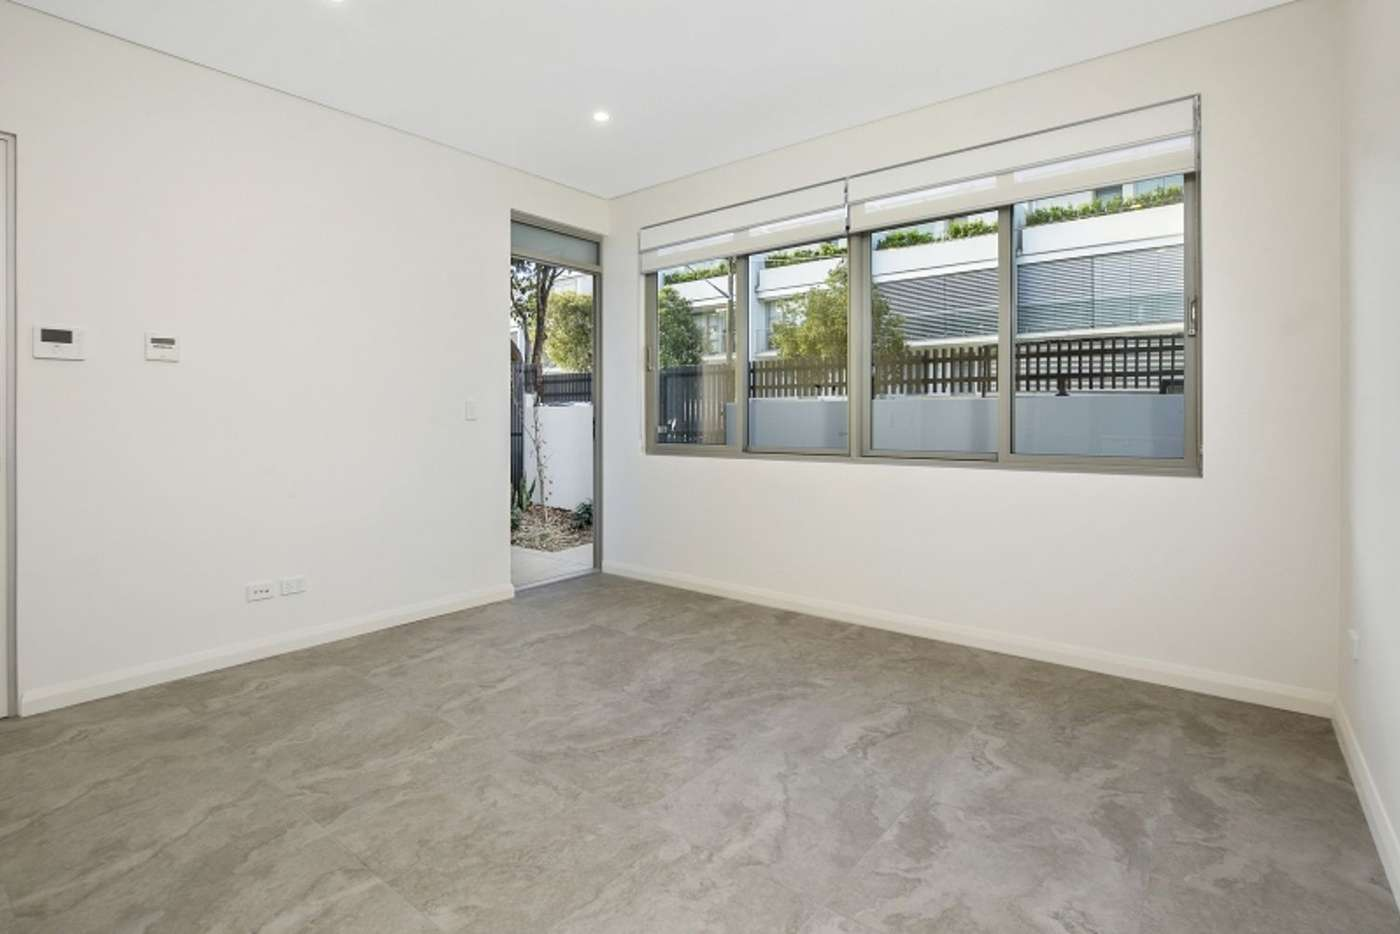 Sixth view of Homely apartment listing, 21-27 William St, Alexandria NSW 2015